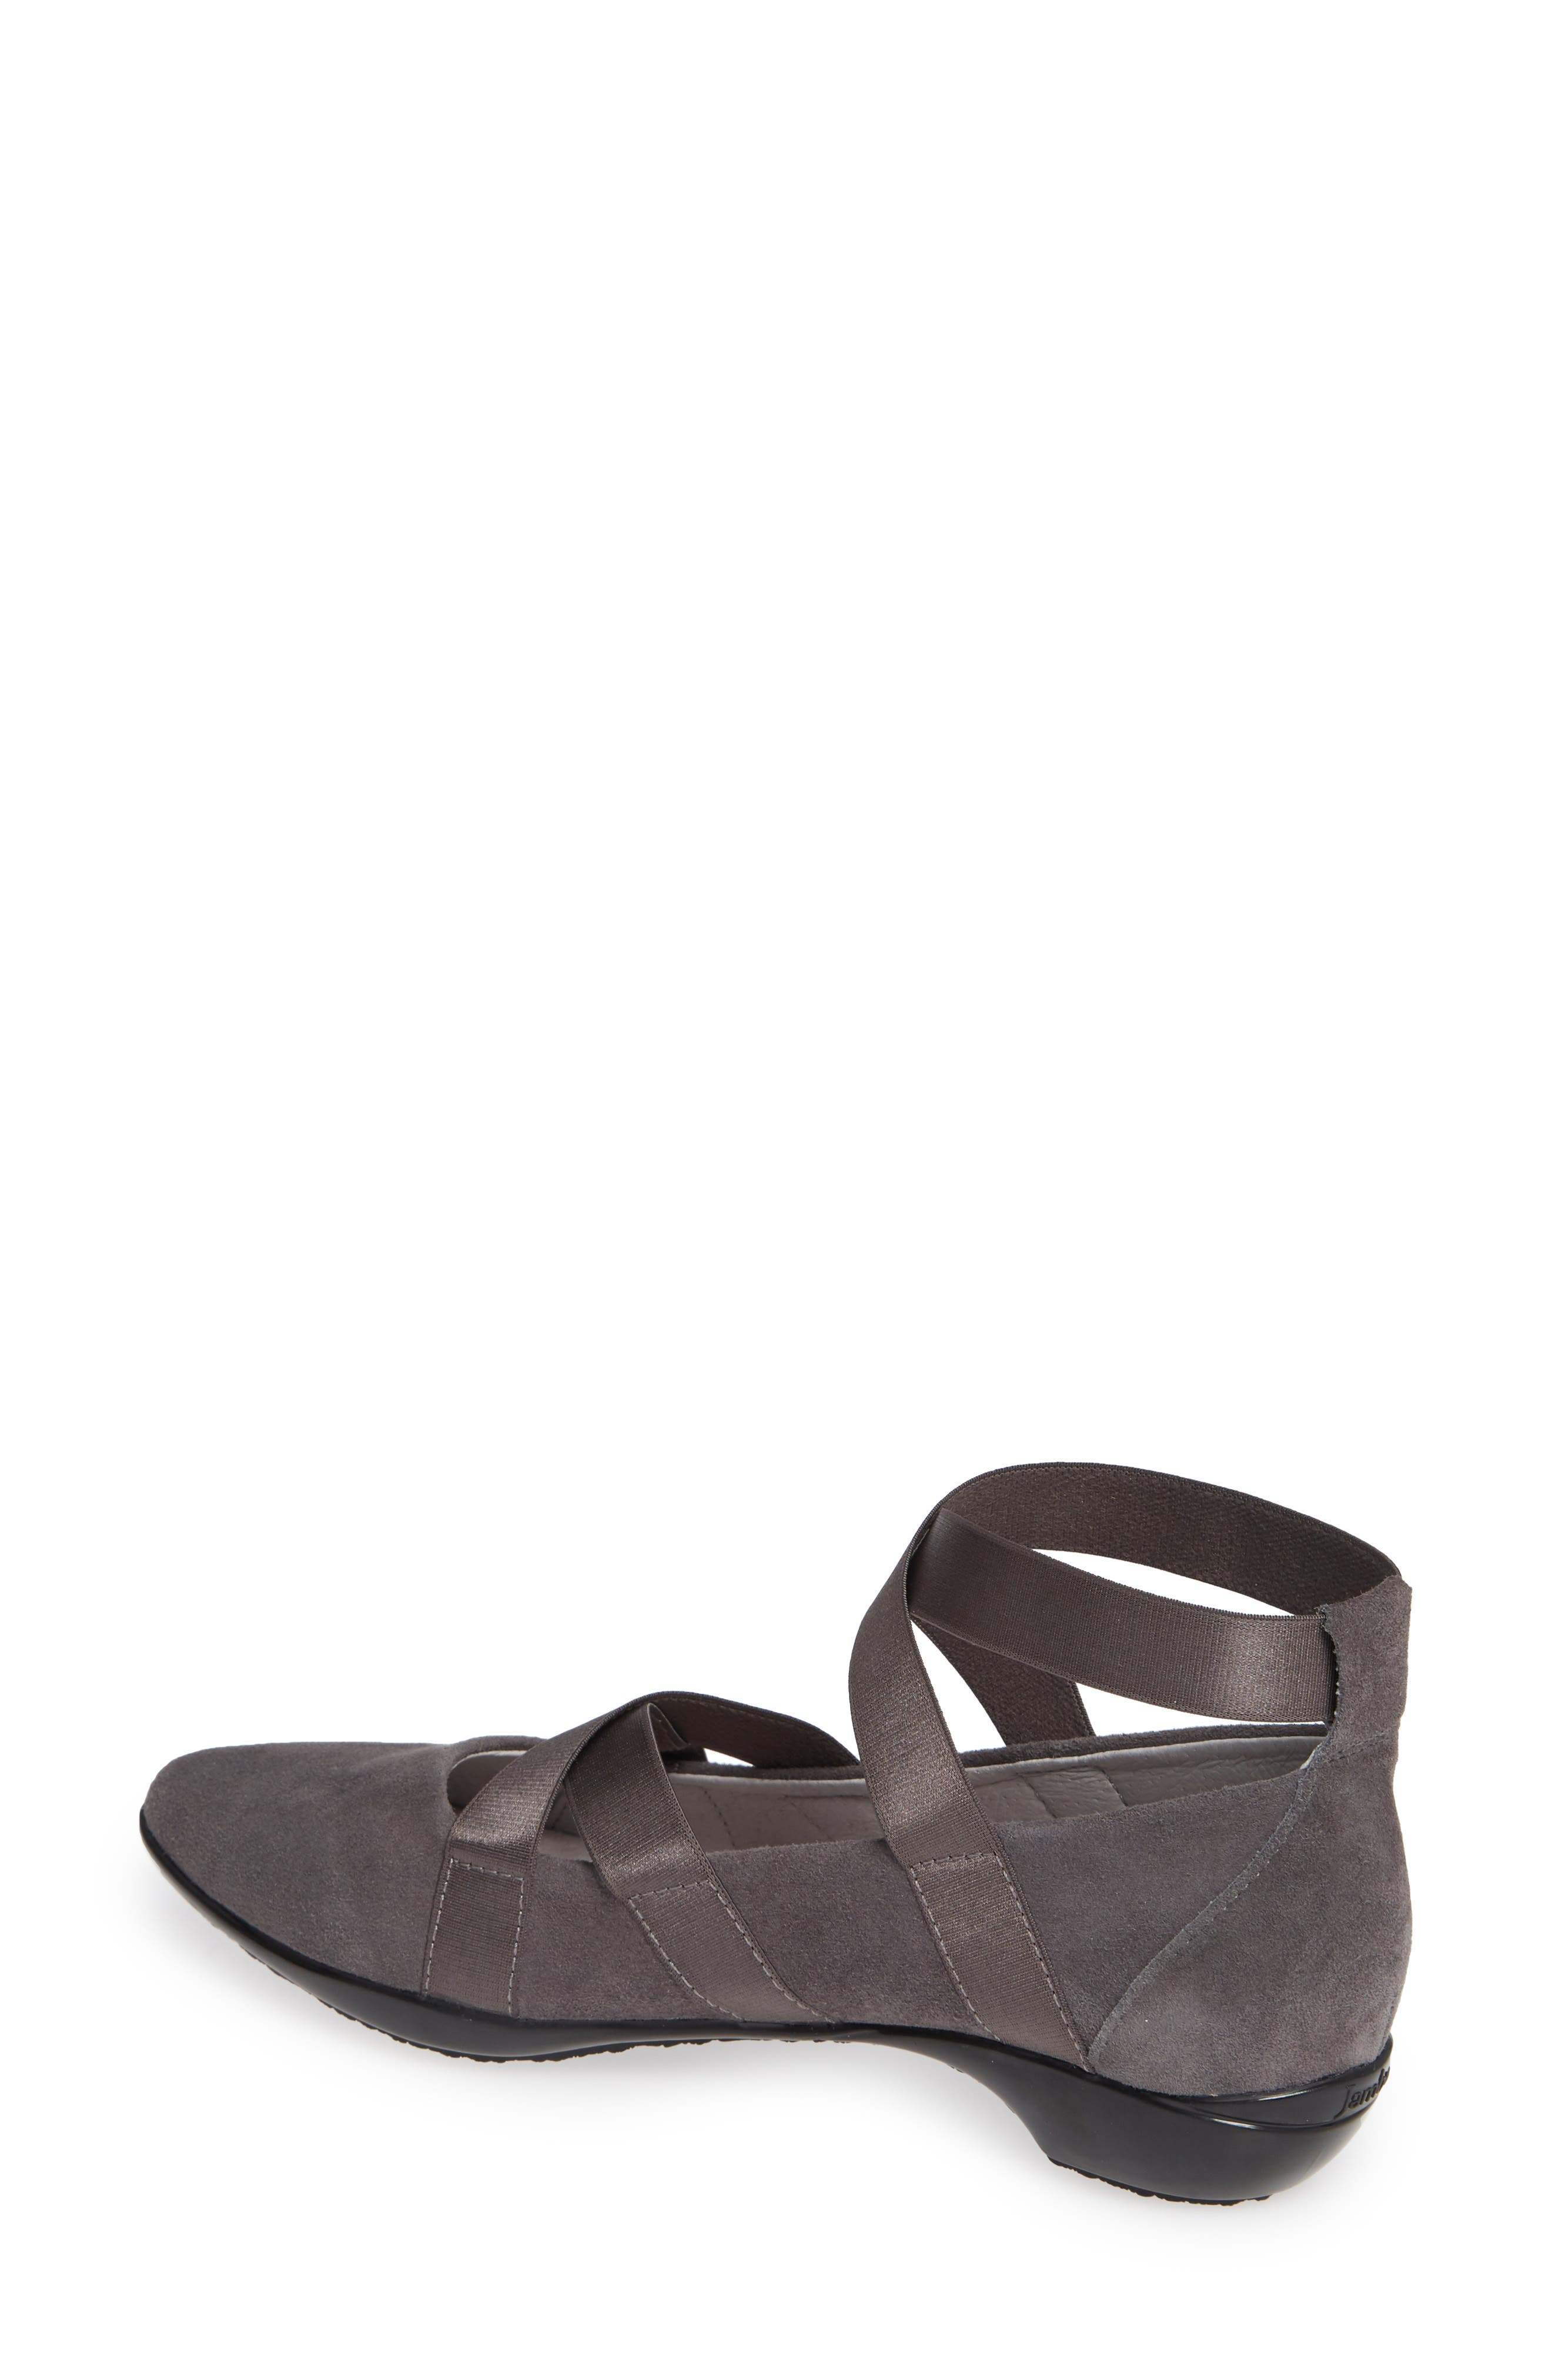 Rumson Flat,                             Alternate thumbnail 2, color,                             CHARCOAL SUEDE